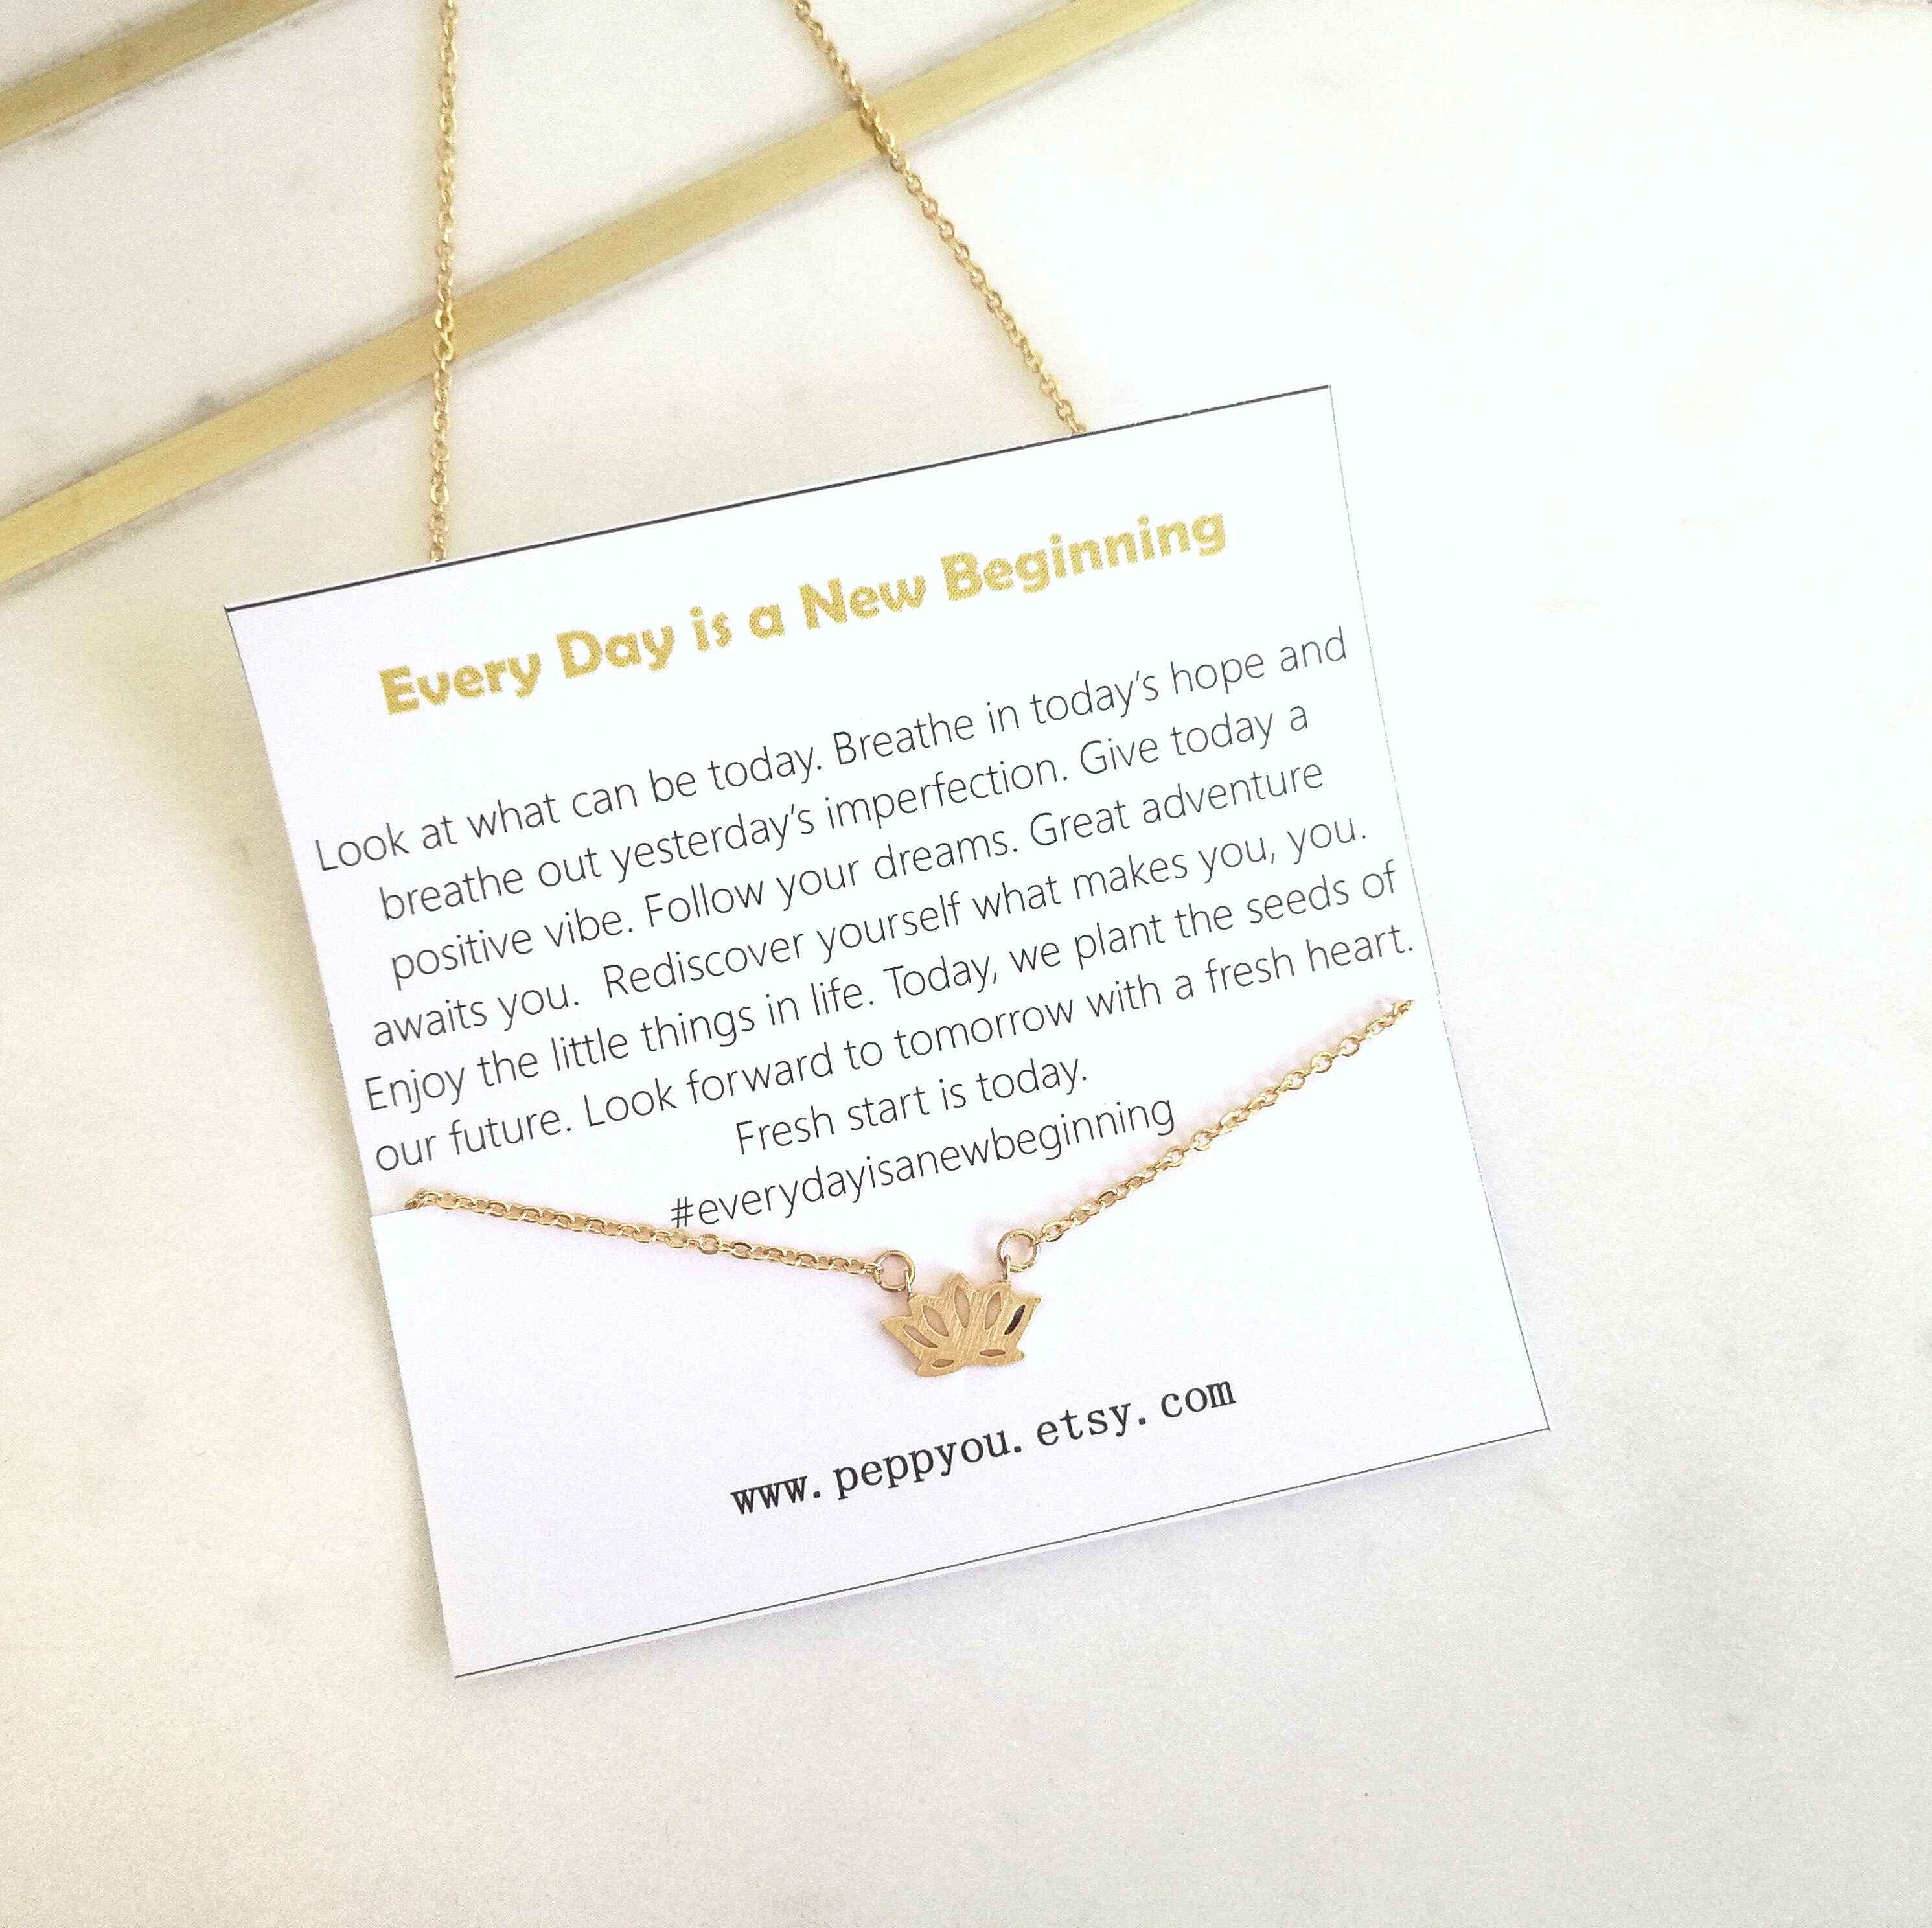 Lotus necklace new beginning necklace inspirational necklace lotus necklace new beginning necklace inspirational necklace delicate lotus necklace flower necklace yoga necklace lotus jewelry mightylinksfo